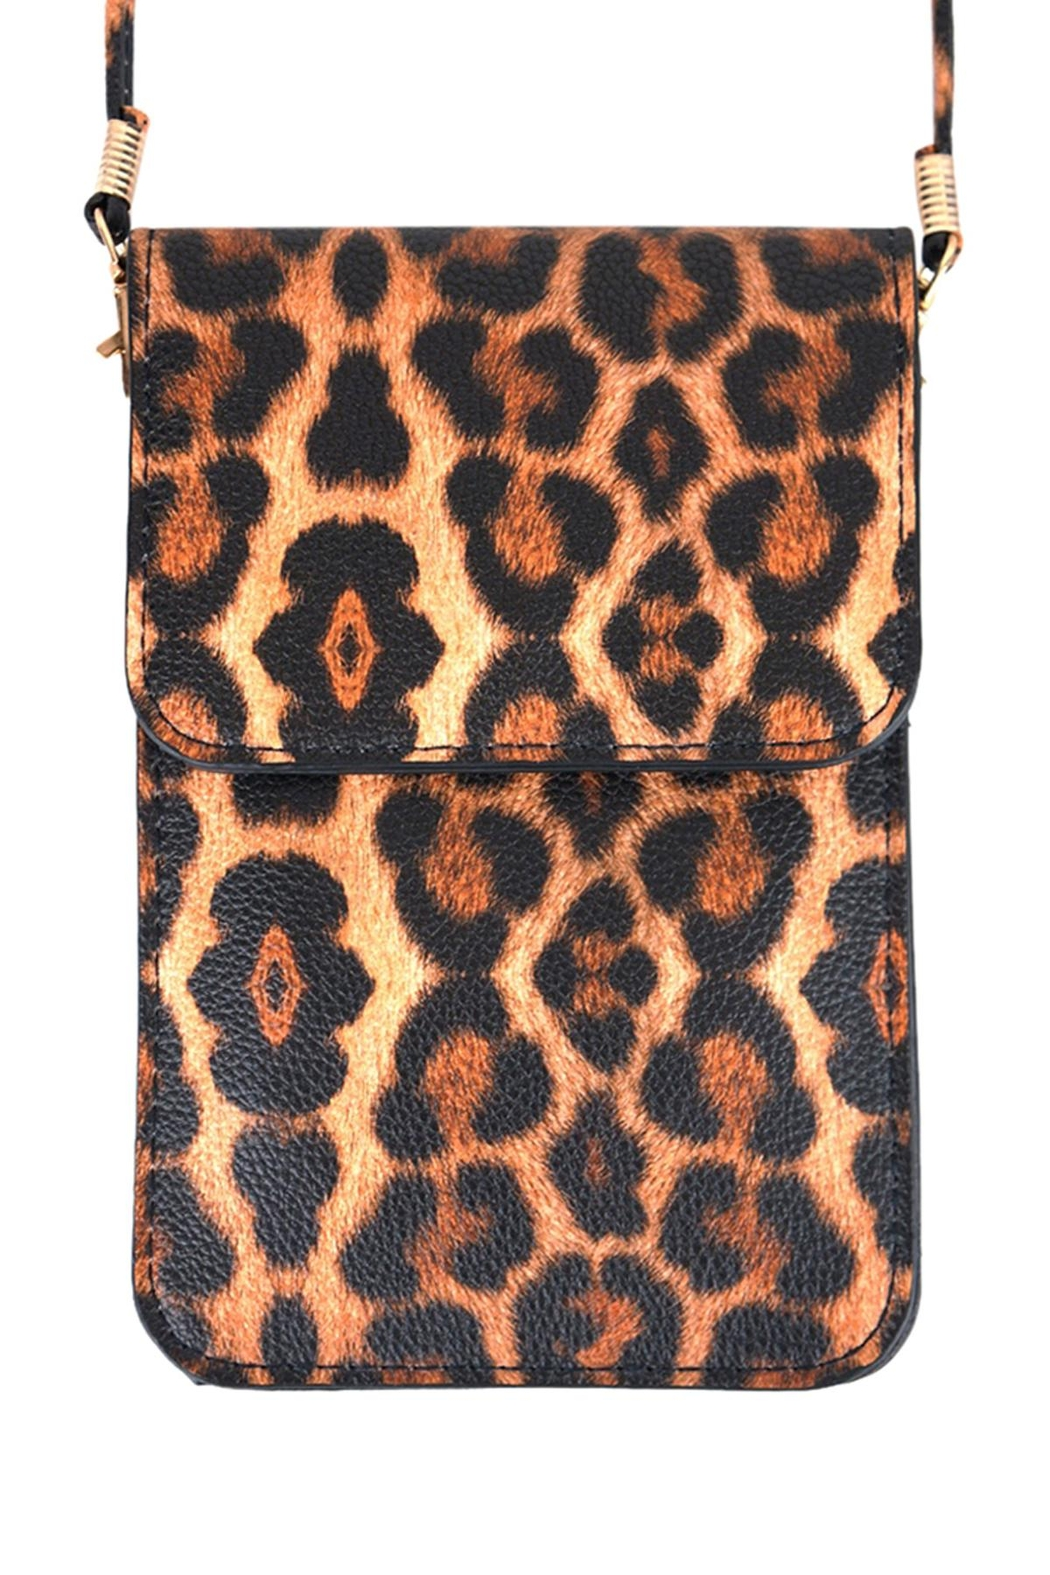 Riah Fashion Leopard-Cellphone-Crossbody-Bag-With-Clear-Window - Main Image